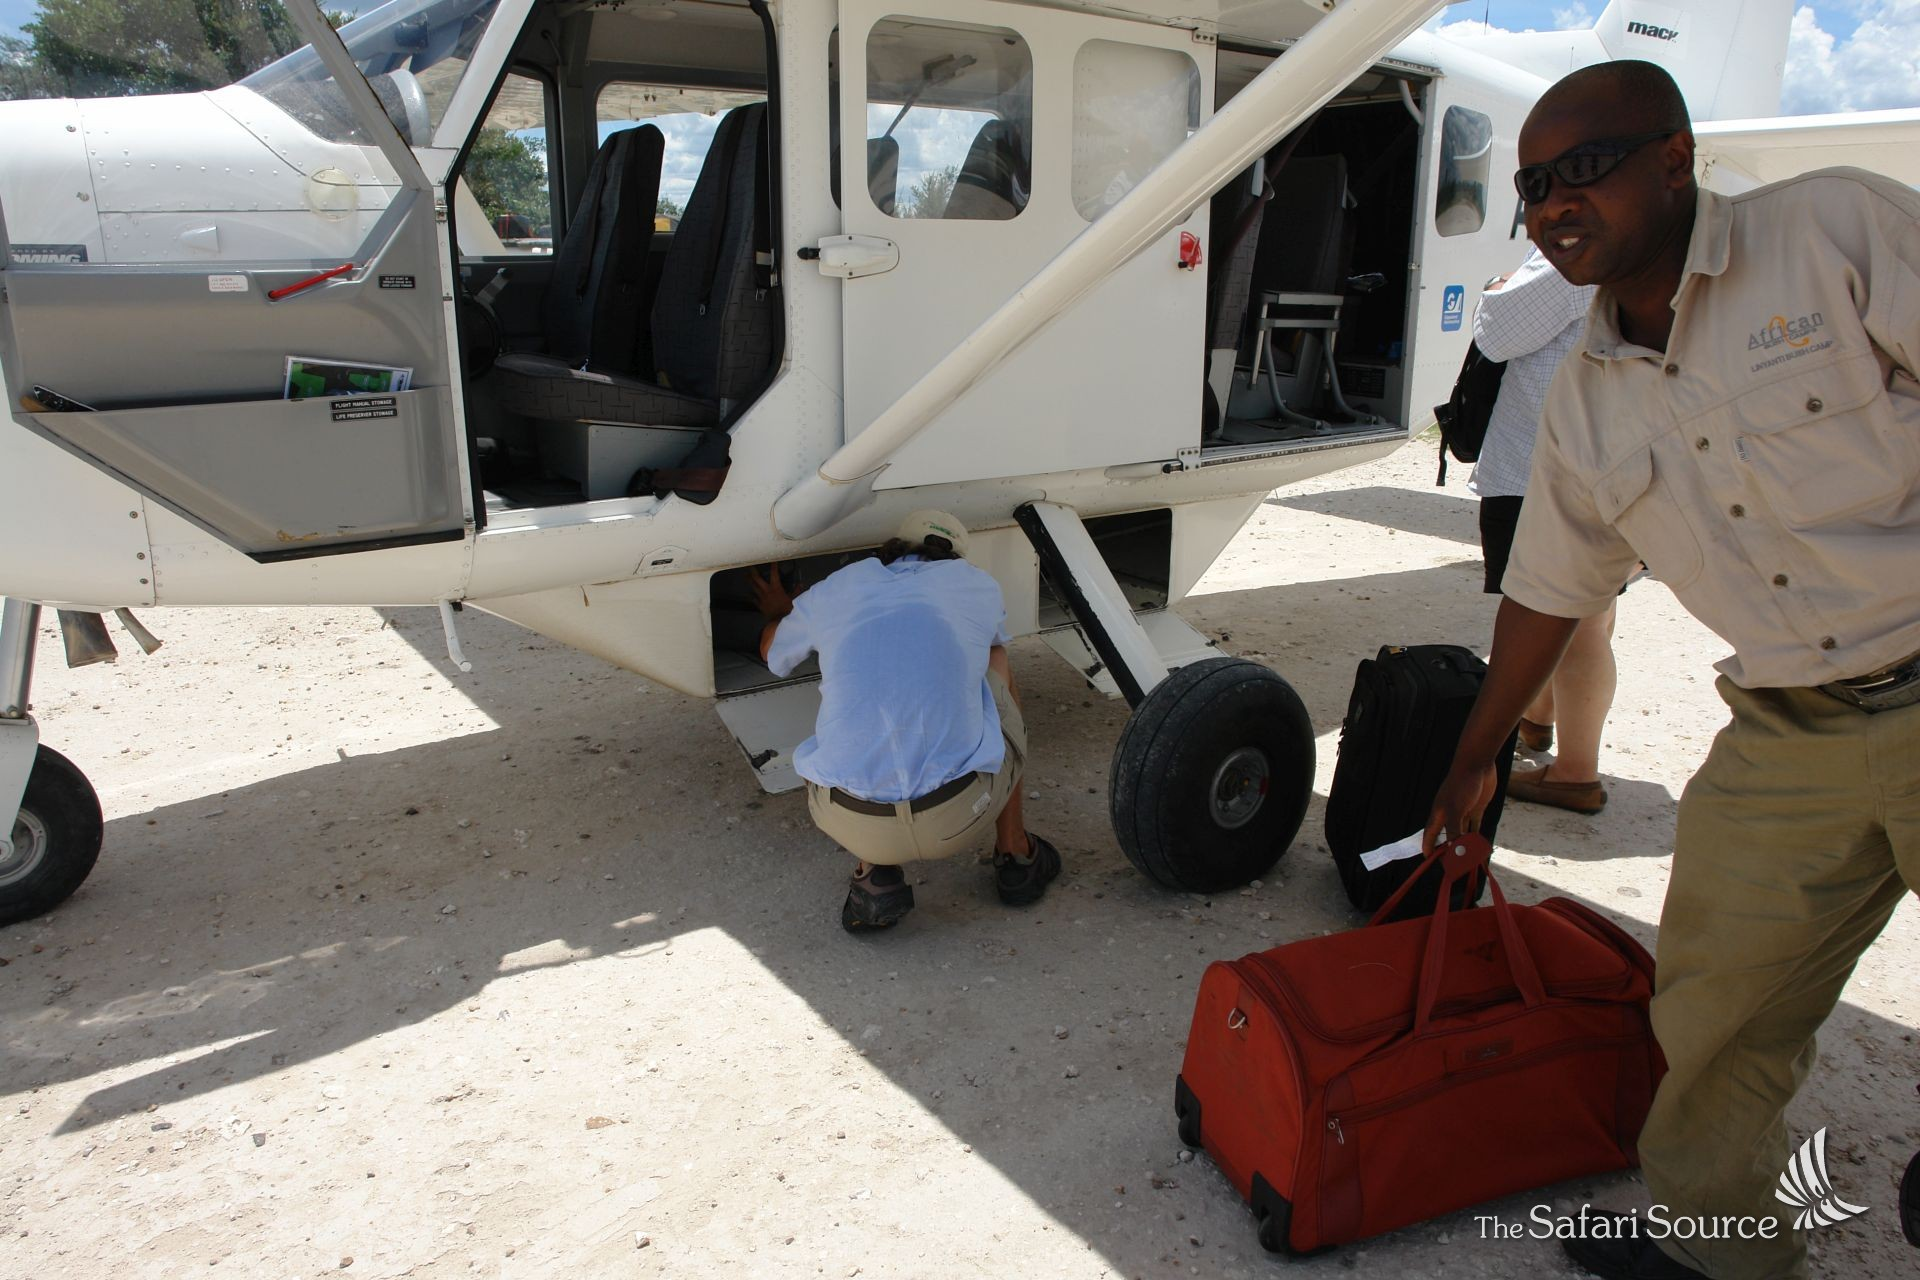 A How To | Bush Charter Flights - Regulations & Restrictions